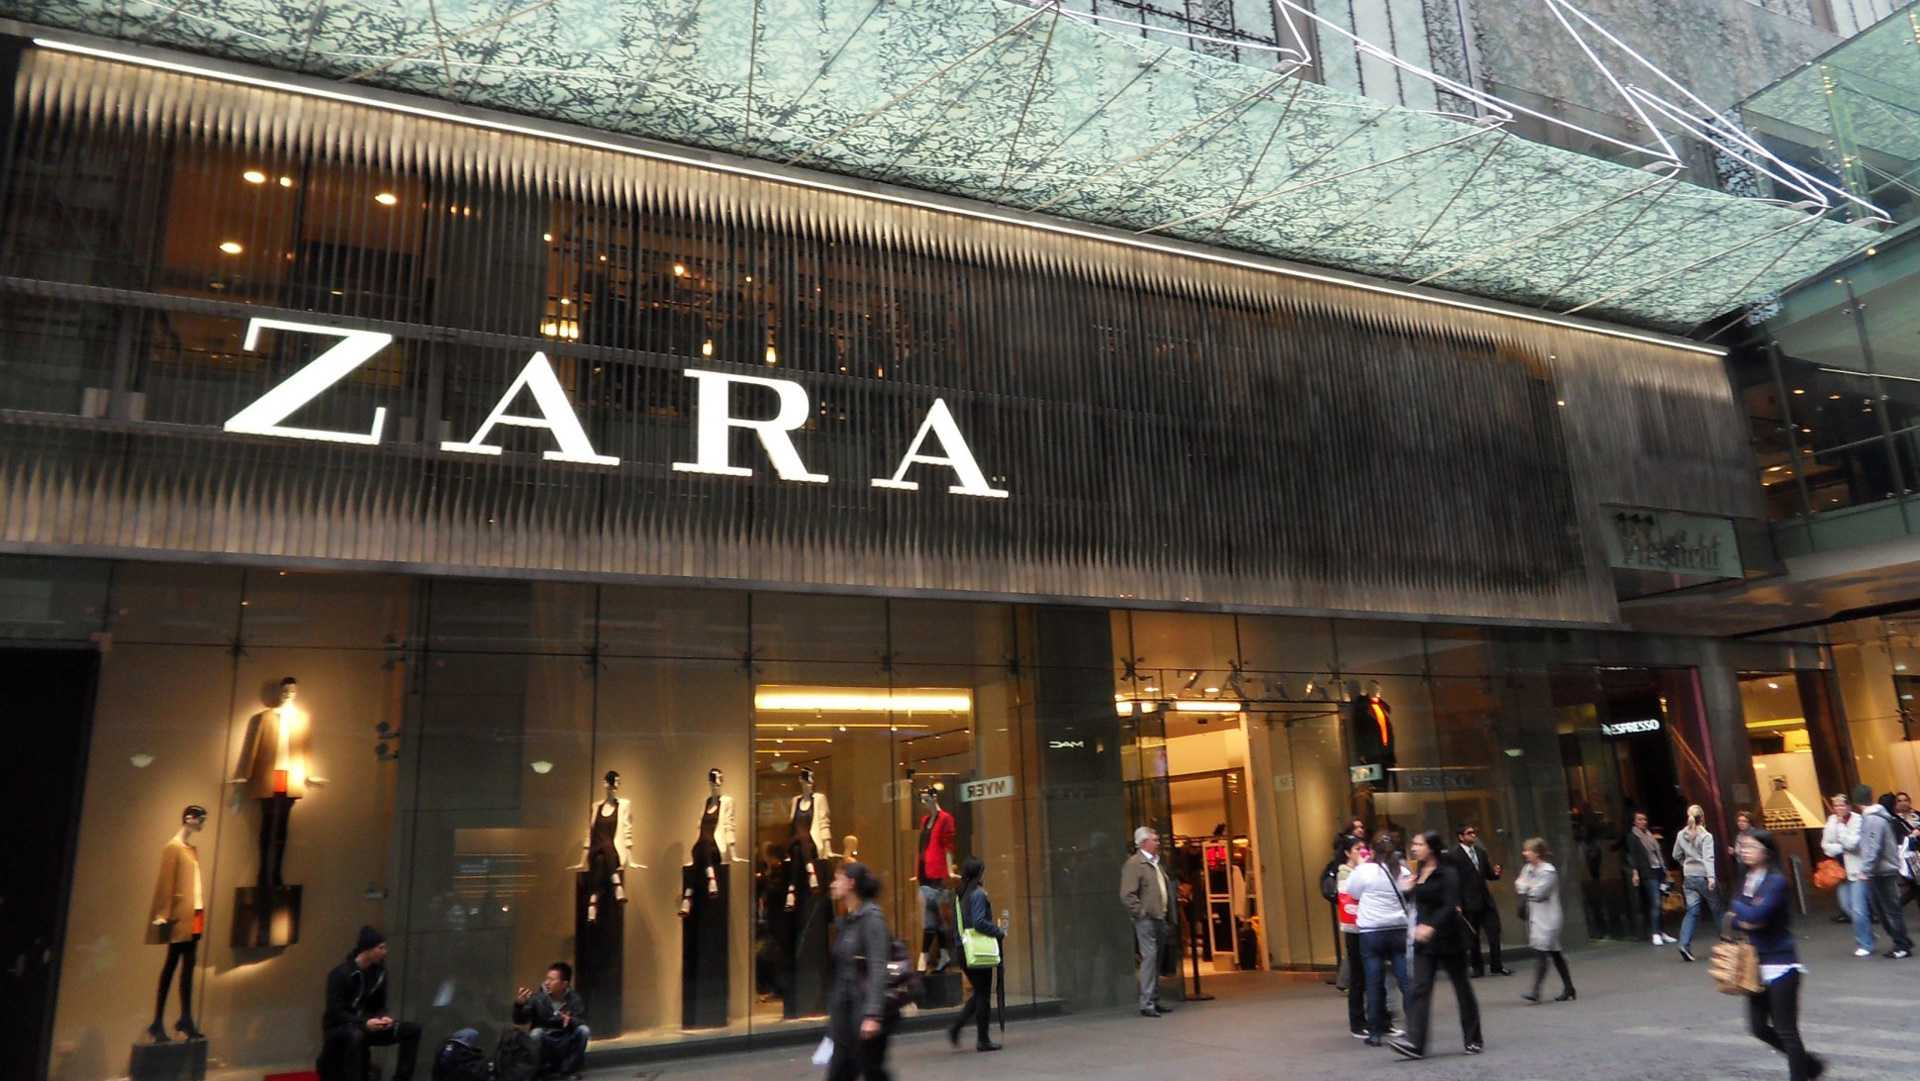 Unpaid Zara Employees Left Notes For The Public Within The Band's Products